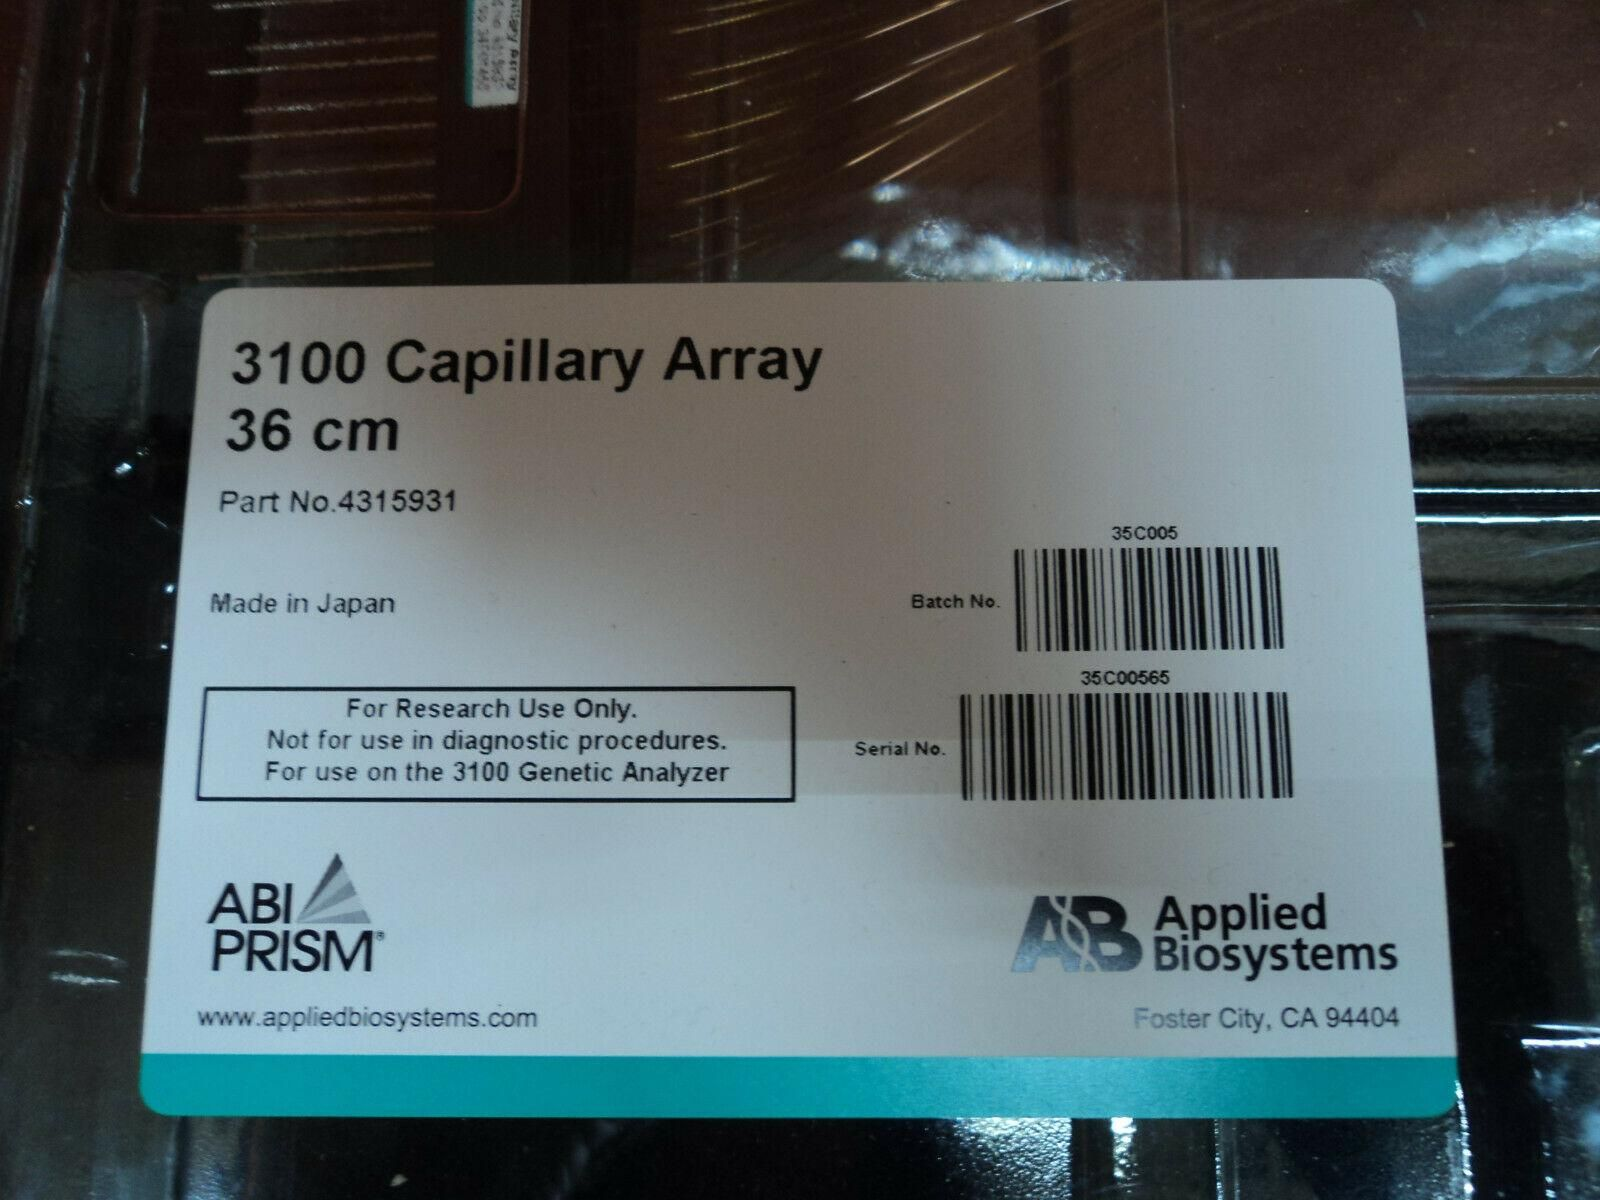 Thermo Applied Biosystems 3100 Capillary Array, 36 cm #4315931 ABI Prism